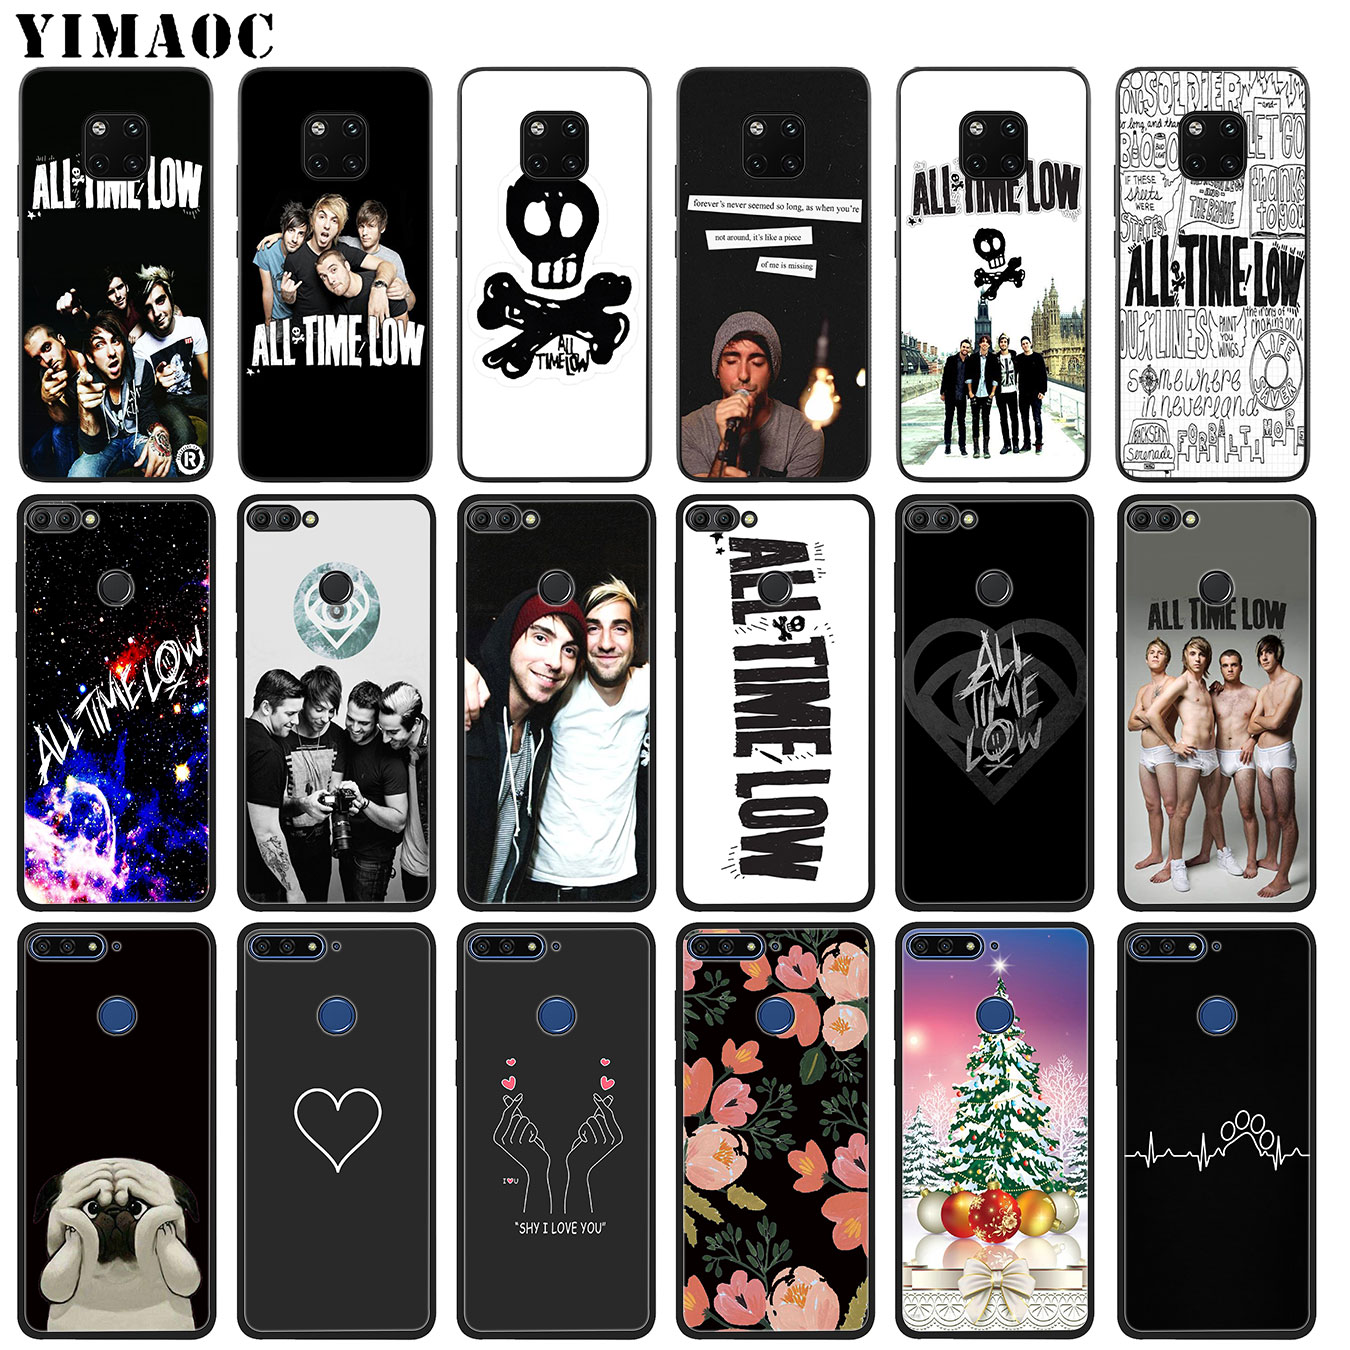 YIMAOC All Time Low Soft Silicone Phone Case for Huawei Mate 30 20 10 Pro Lite Nova 5I 3i 3 2i 2 Lite Black Cover image